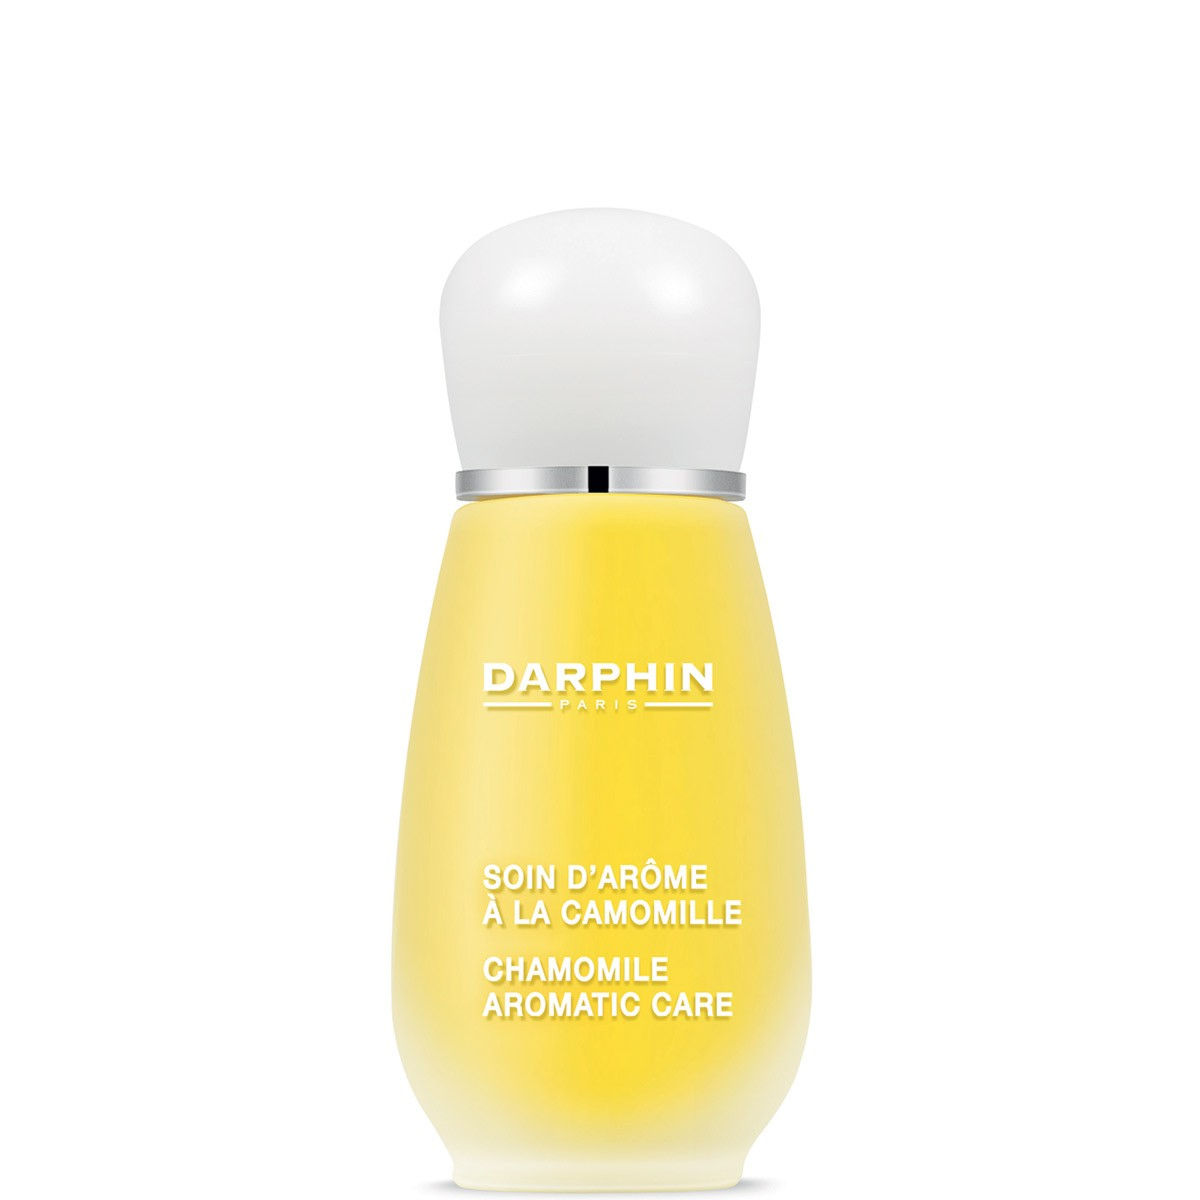 DA CHAMOMILE AROMATIC CARE